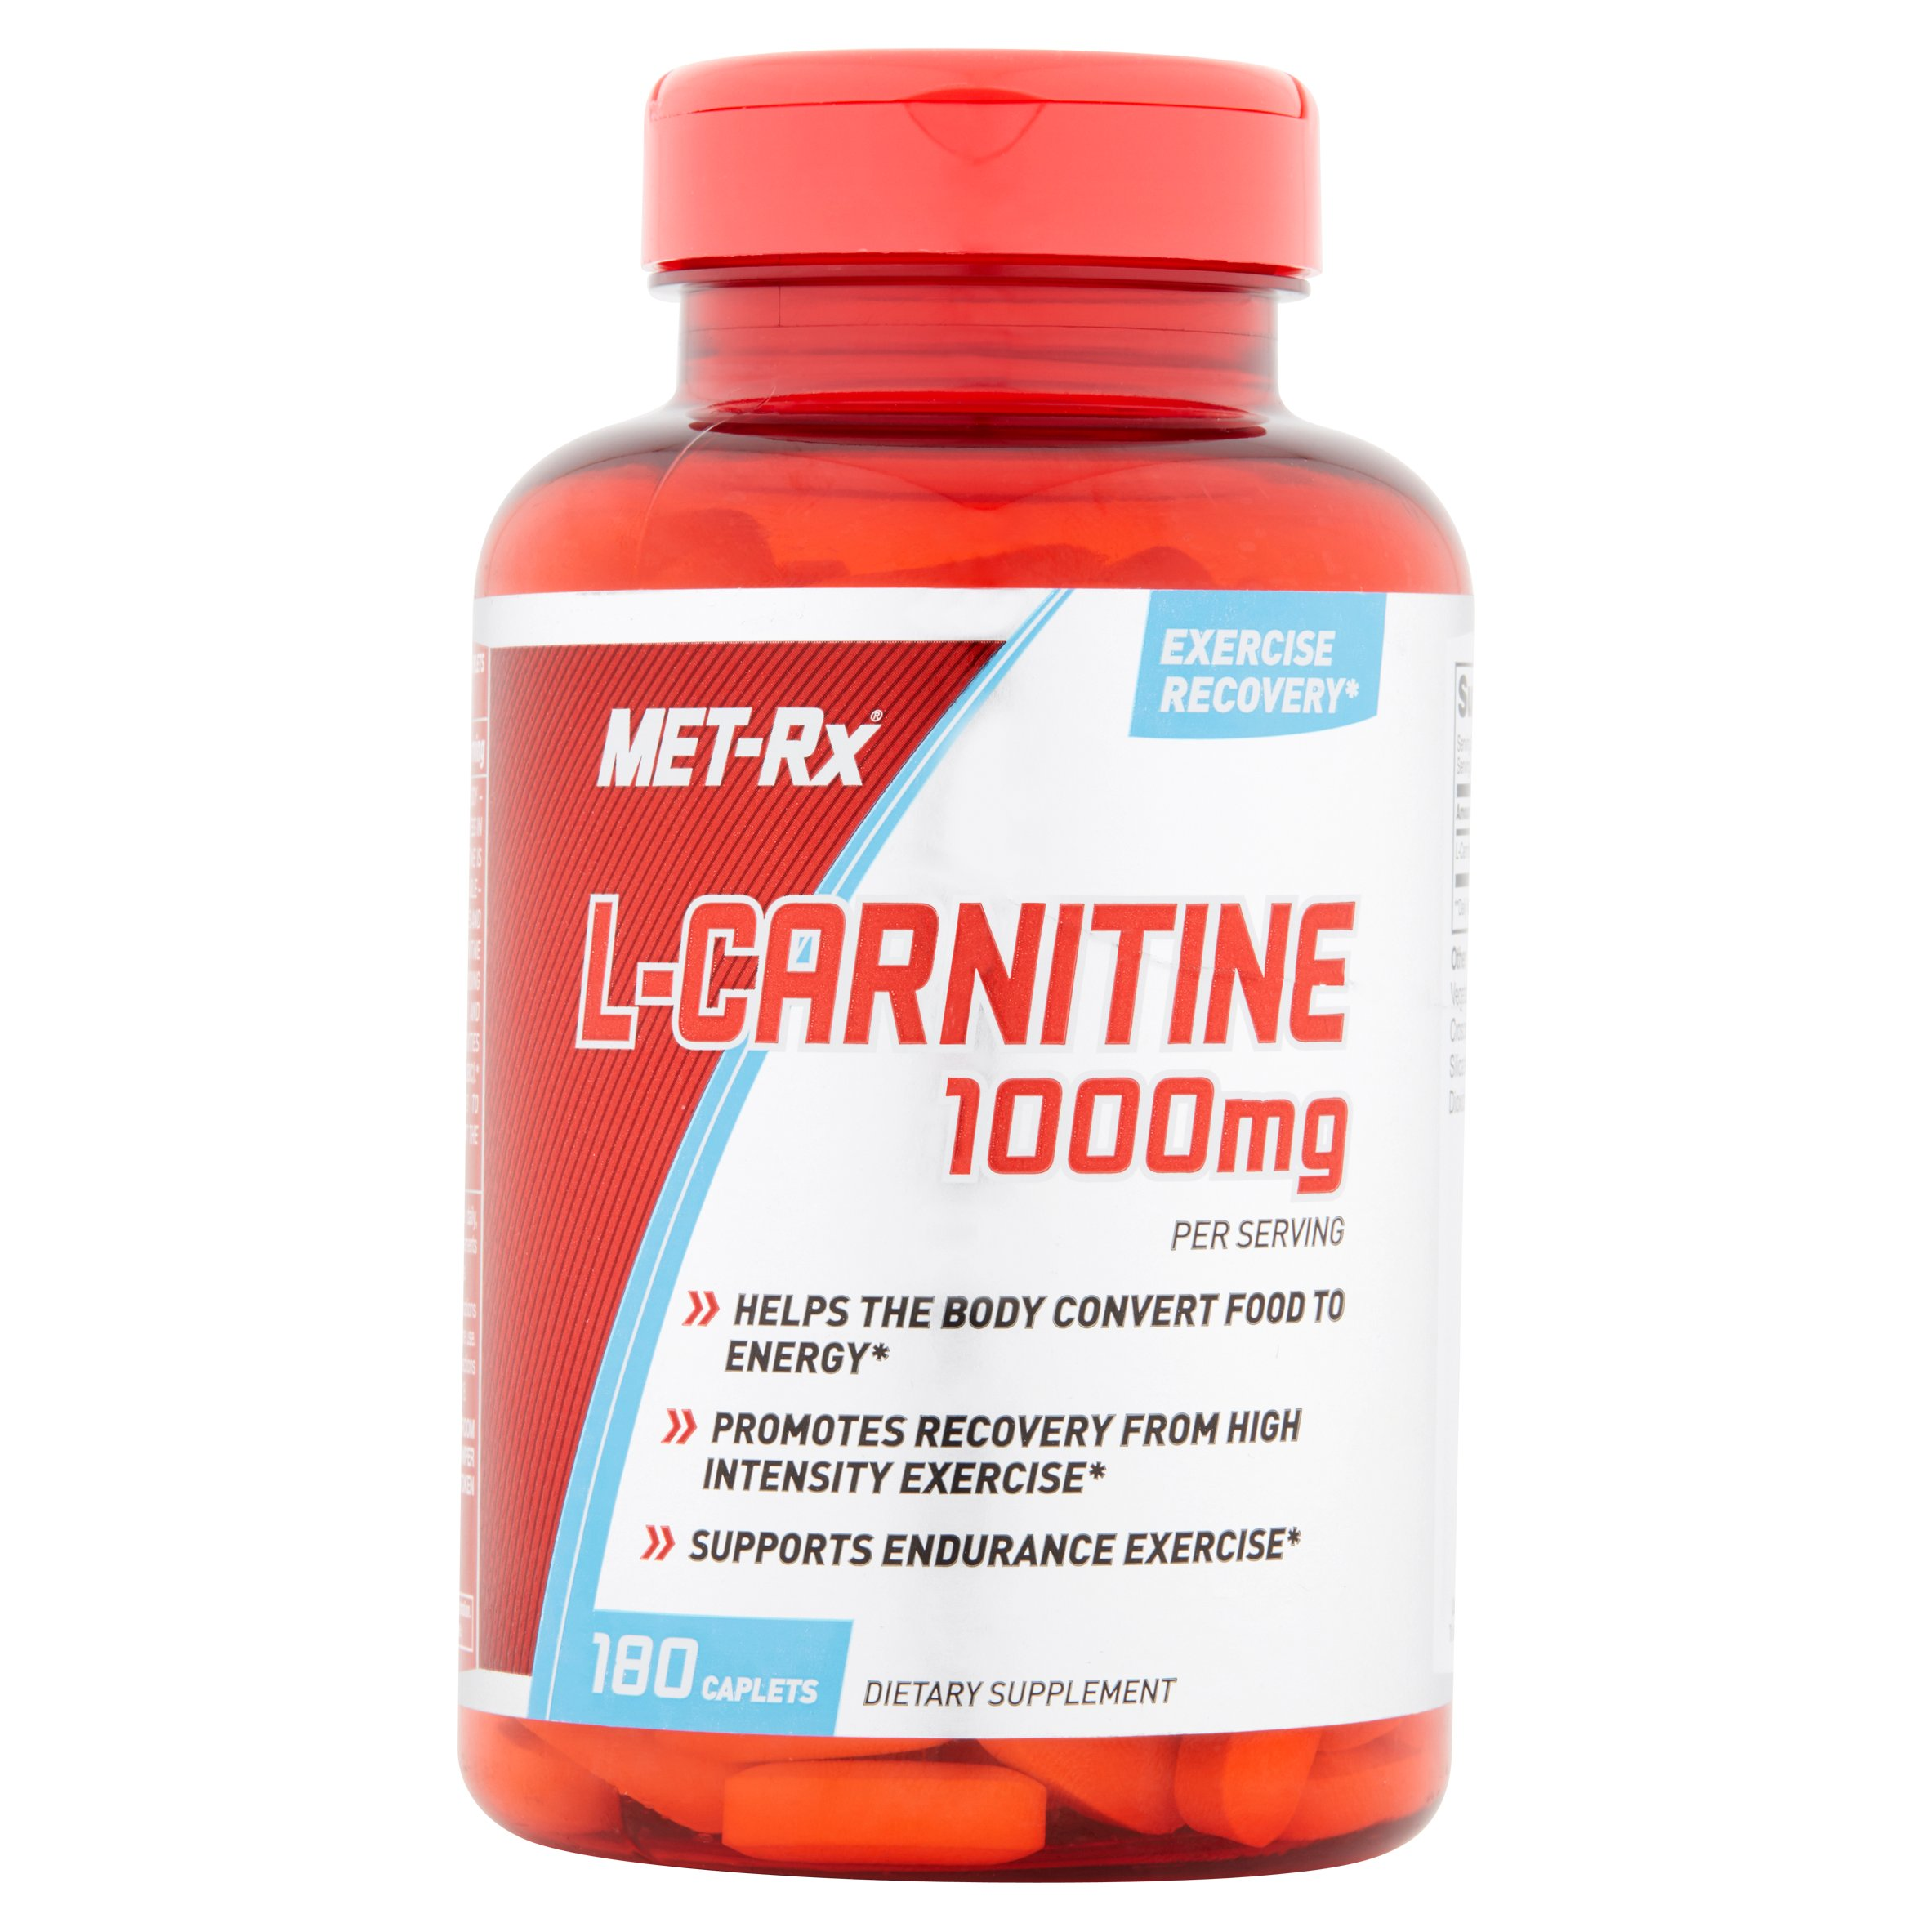 MET-Rx L-Carnitine Dietary Supplement, 1000mg, 180 count